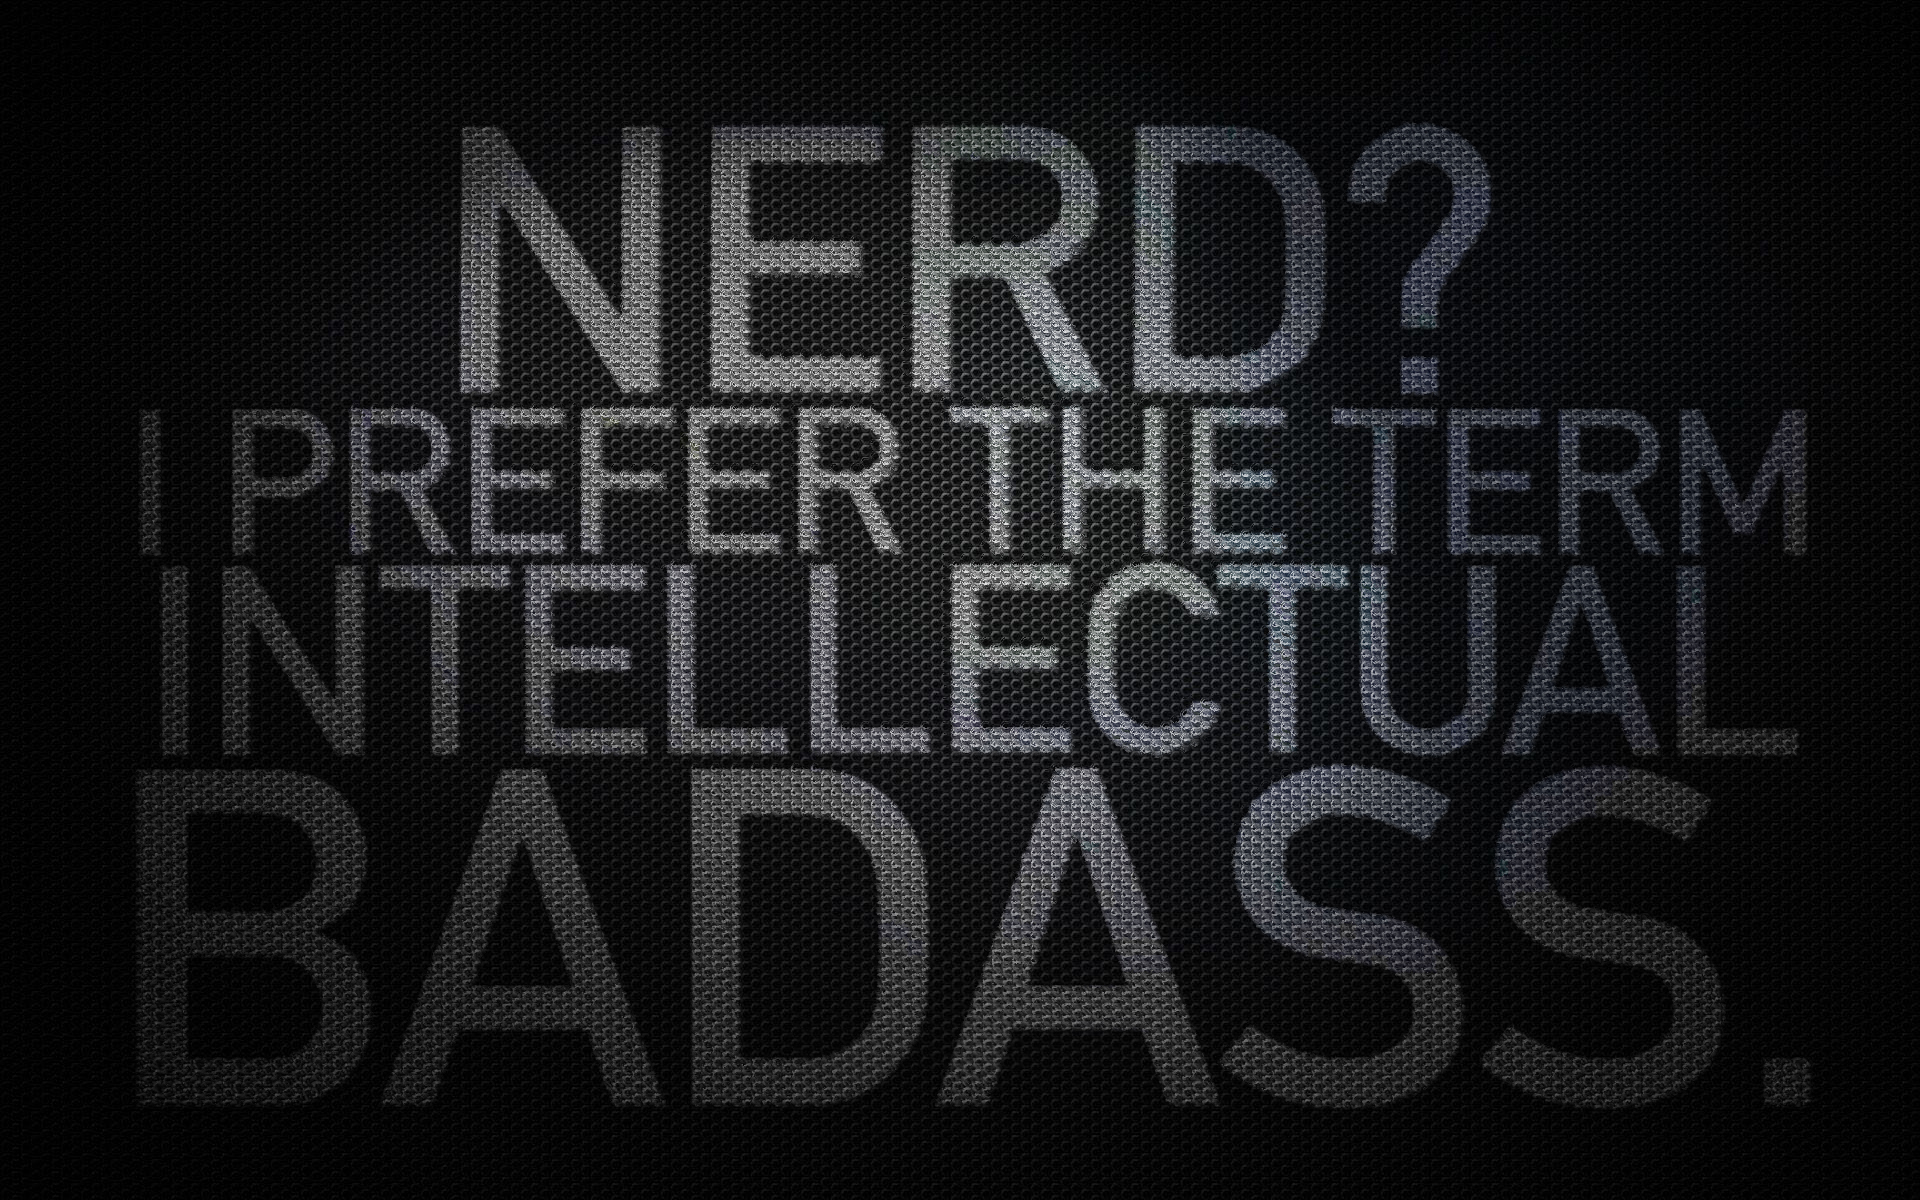 Download HQ nerd, carbon fibre, badass, black Surfaces wallpaper / 1920x1200